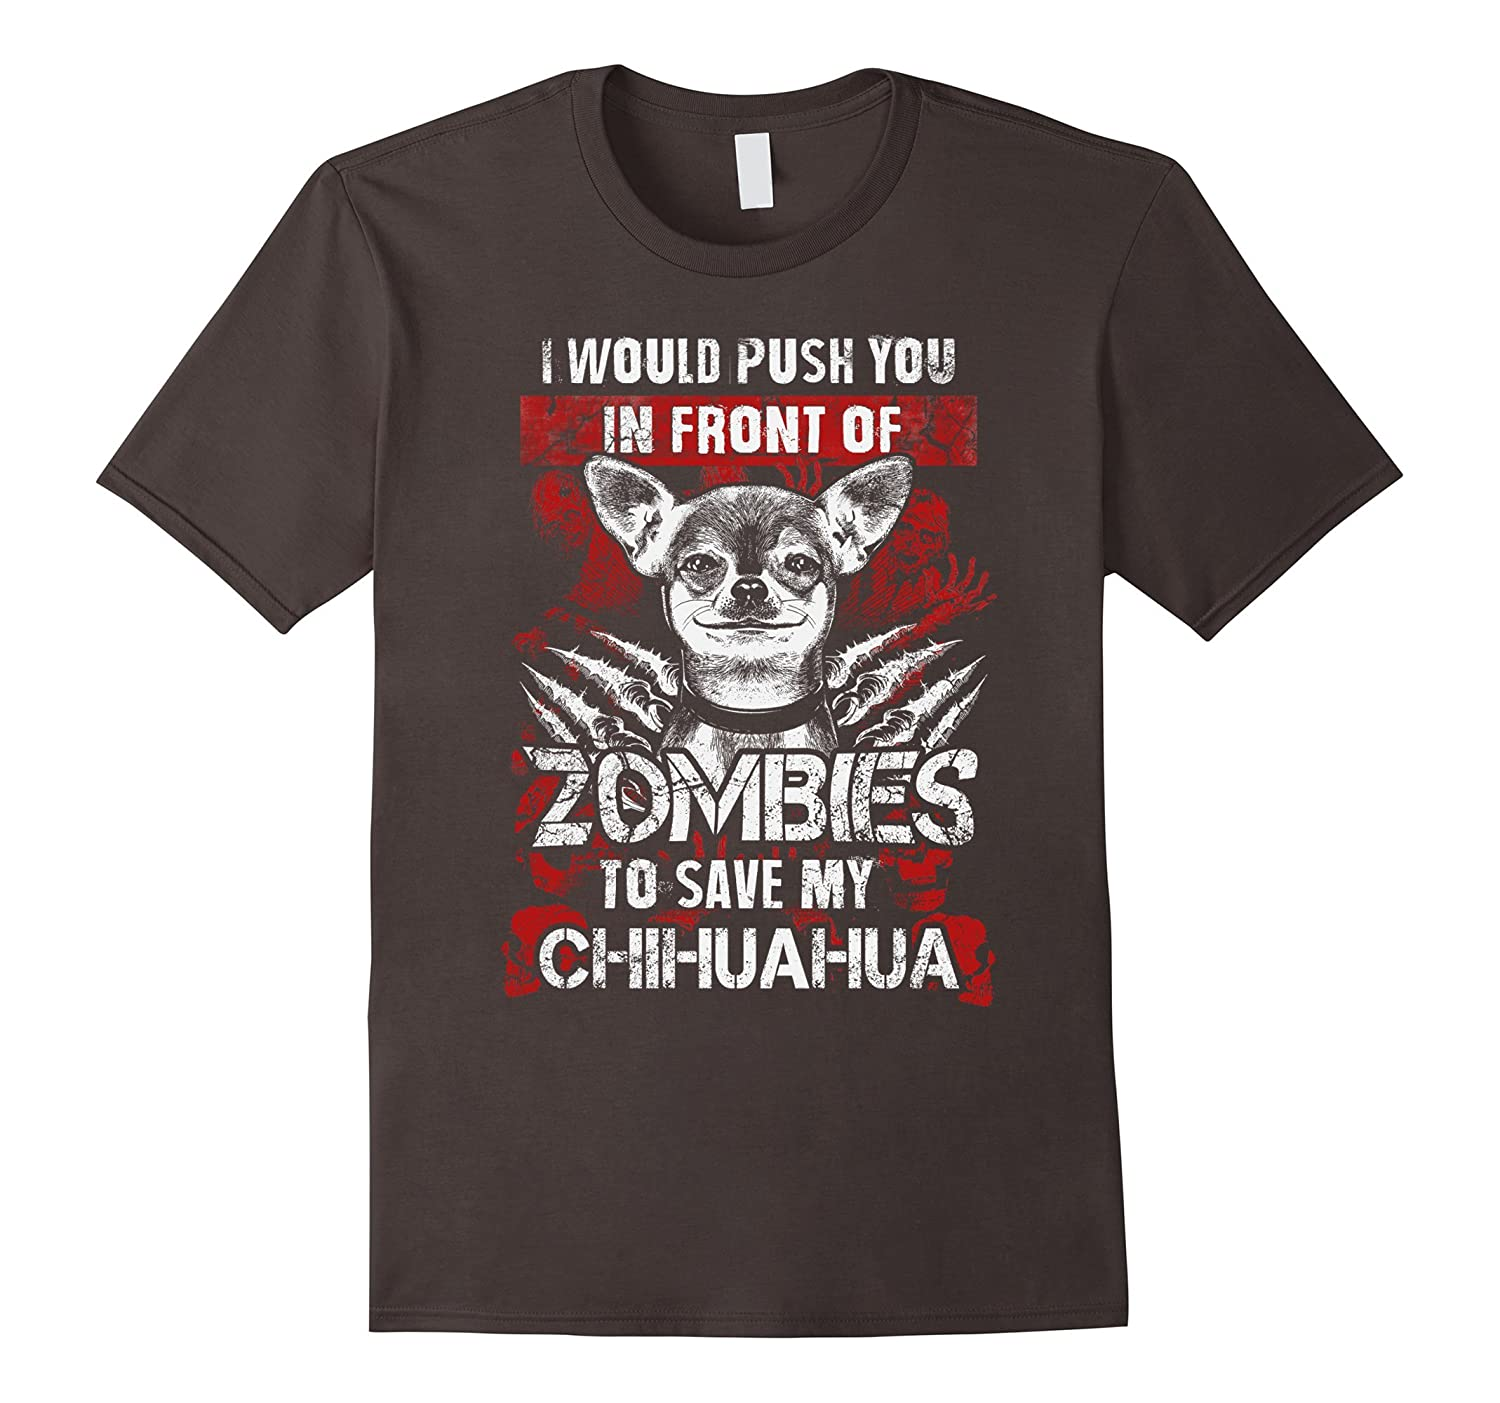 Zombies To Save My Chihuahua - Funny Halloween Shirt Gift-TH